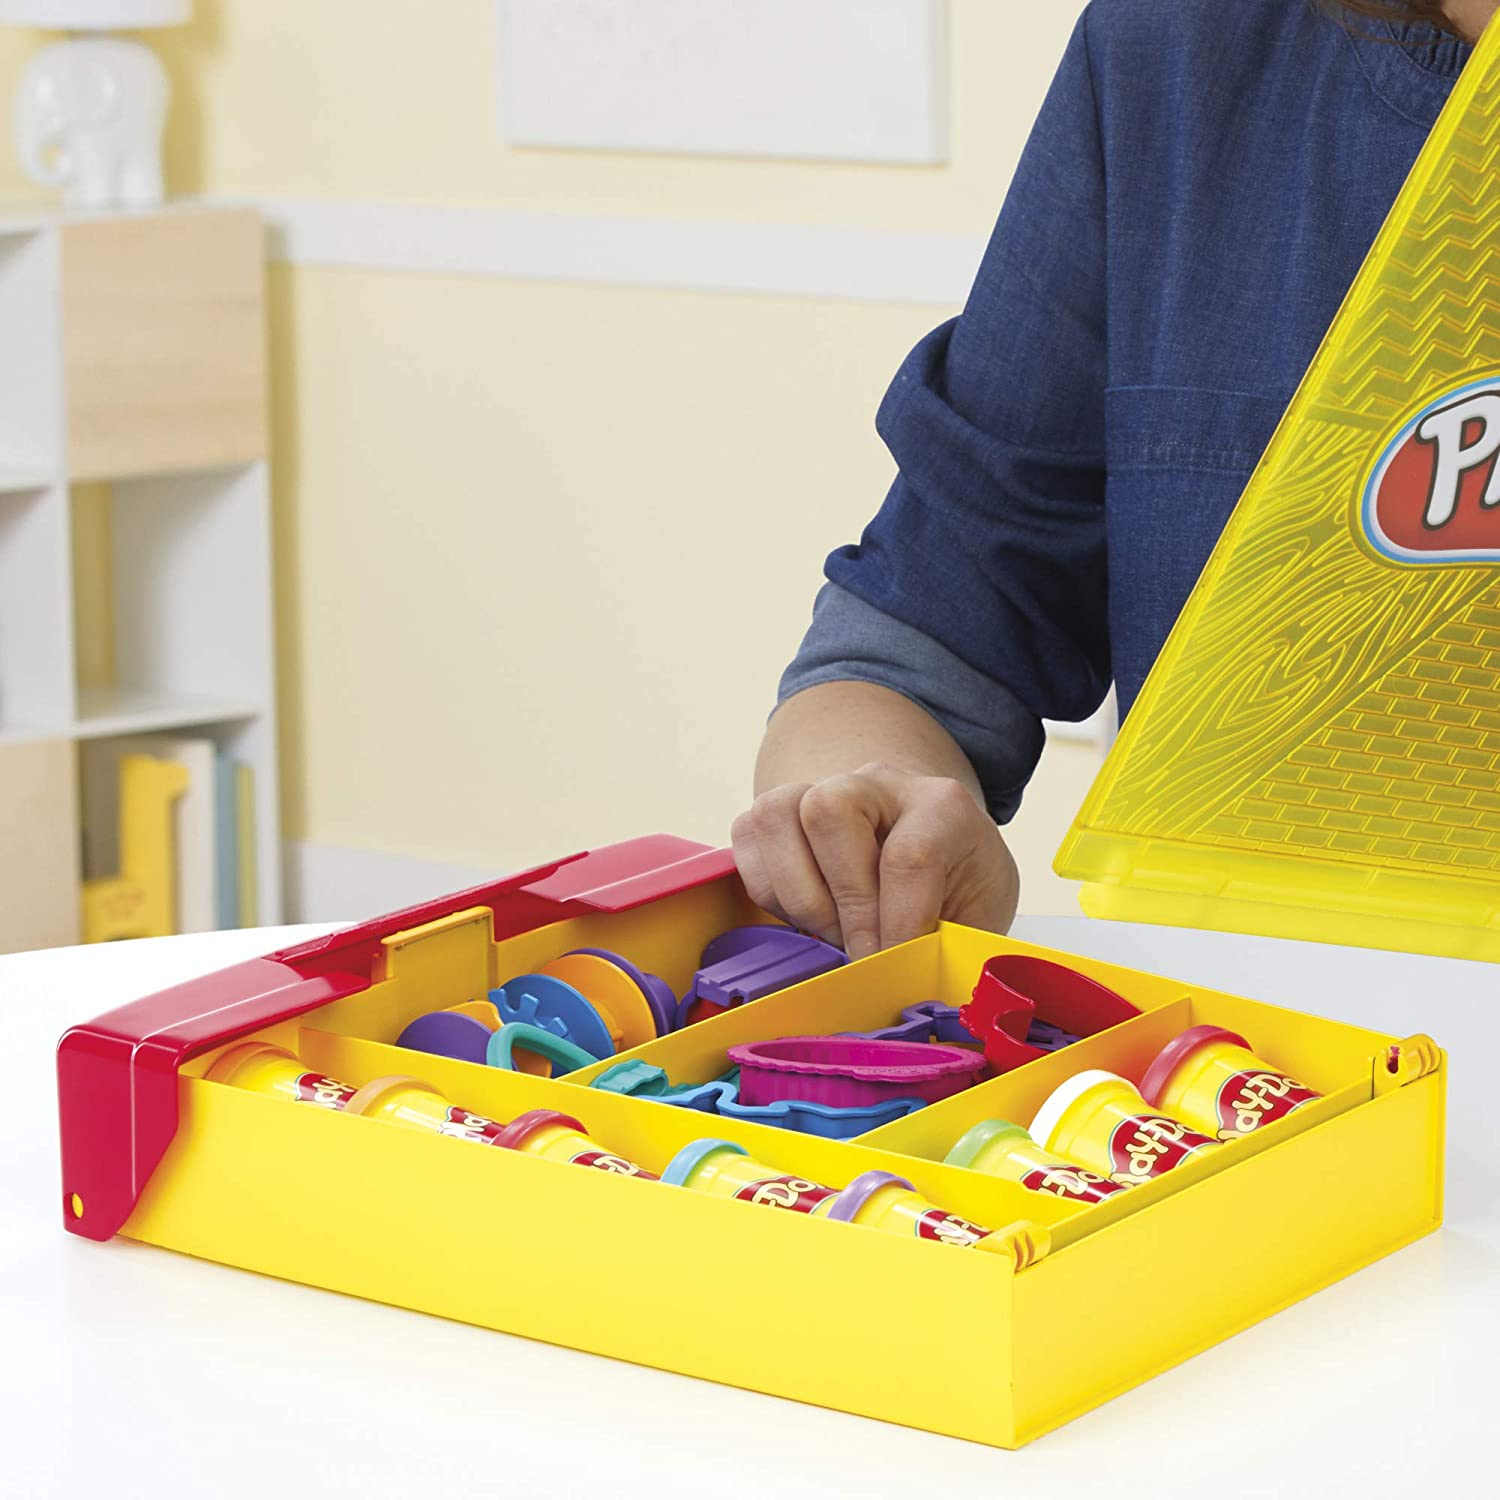 Play-Doh Large Tools and Storage Activity Set for Kids 3 Years and Up with 8 Non-Toxic Colors and 20-Plus Tools